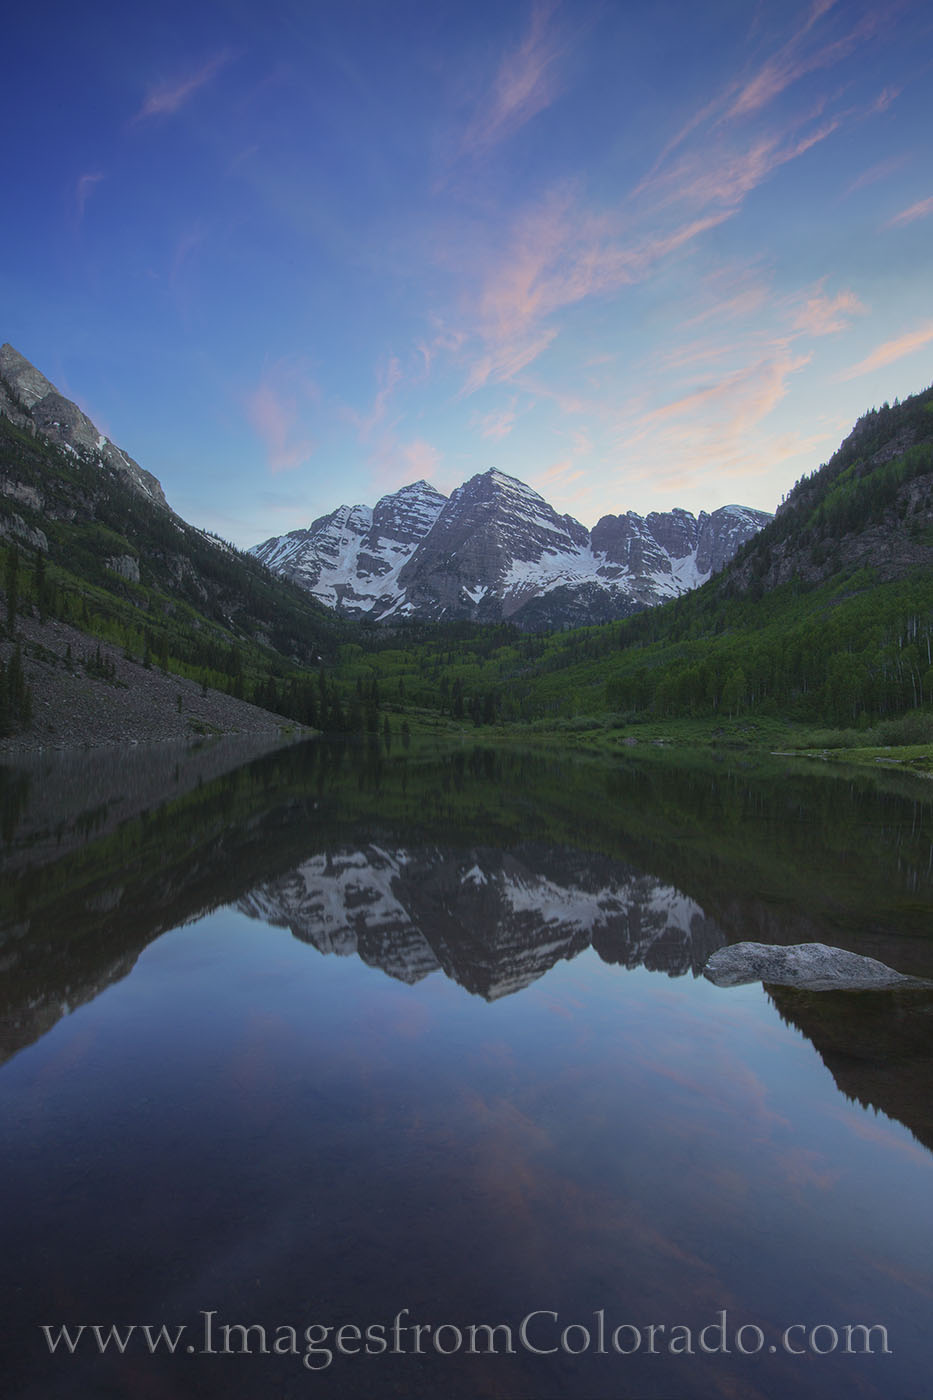 maroon bells, north maroon, maroon peak, aspen, maroon lake, maroon bells wilderness, sunset, summer, coloardo summer14ers, photo